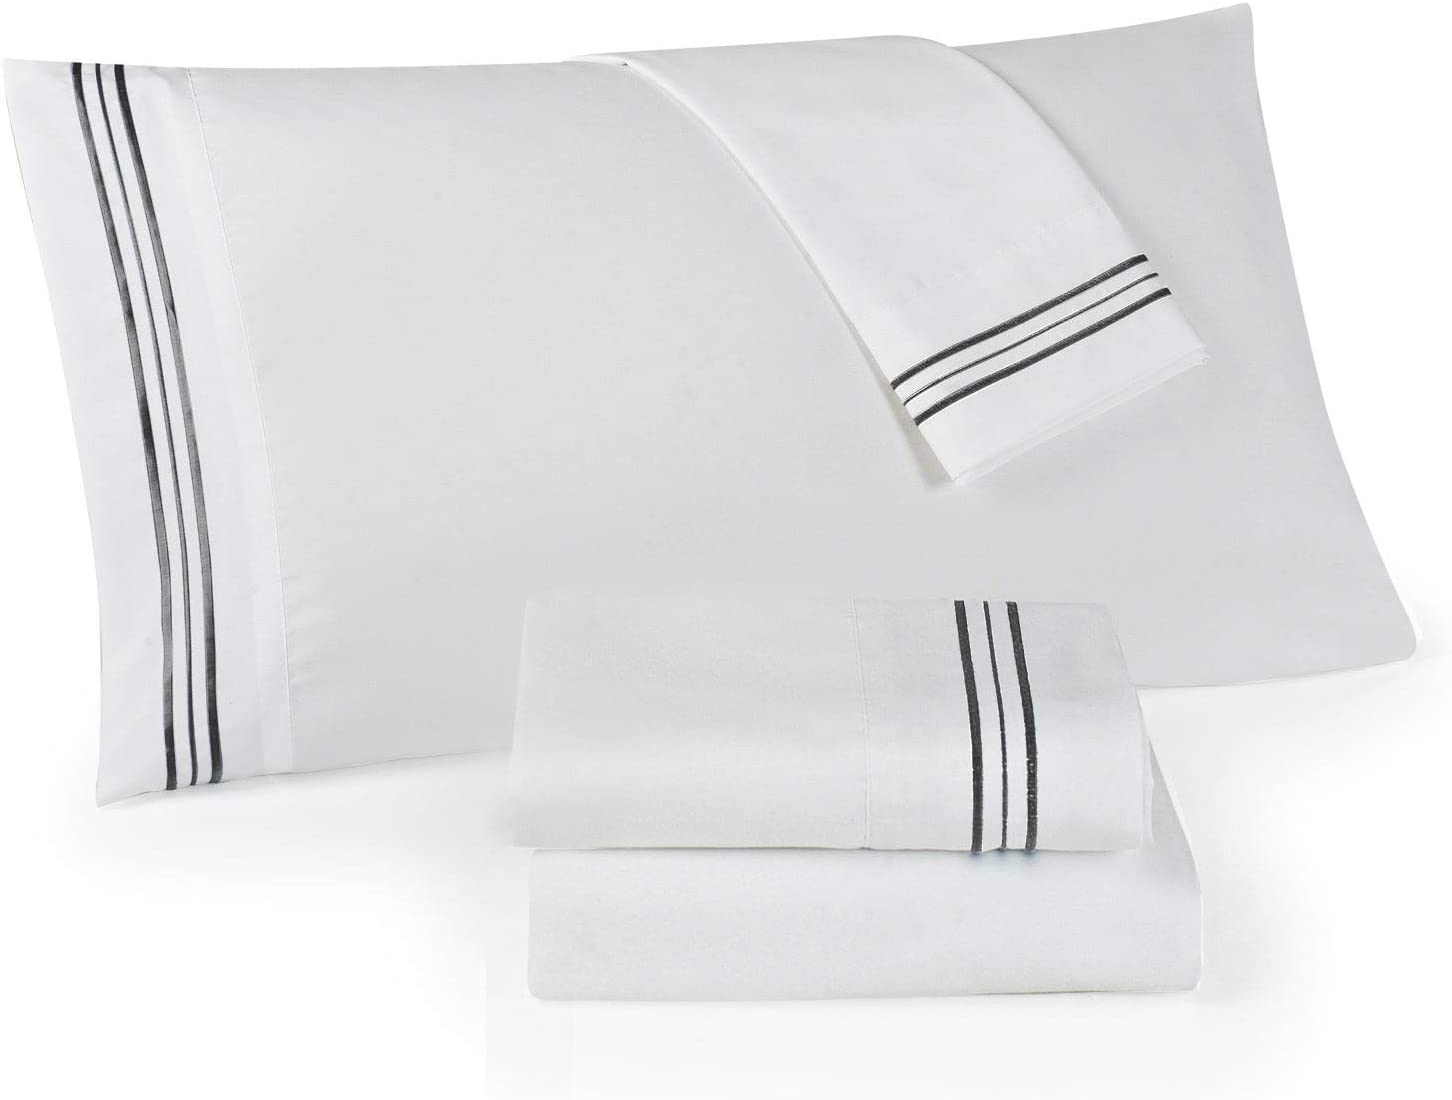 Set of 2 Embroidered Pillow Covers 100% Cotton Count Thread 500 Manufacturer direct delivery Over item handling